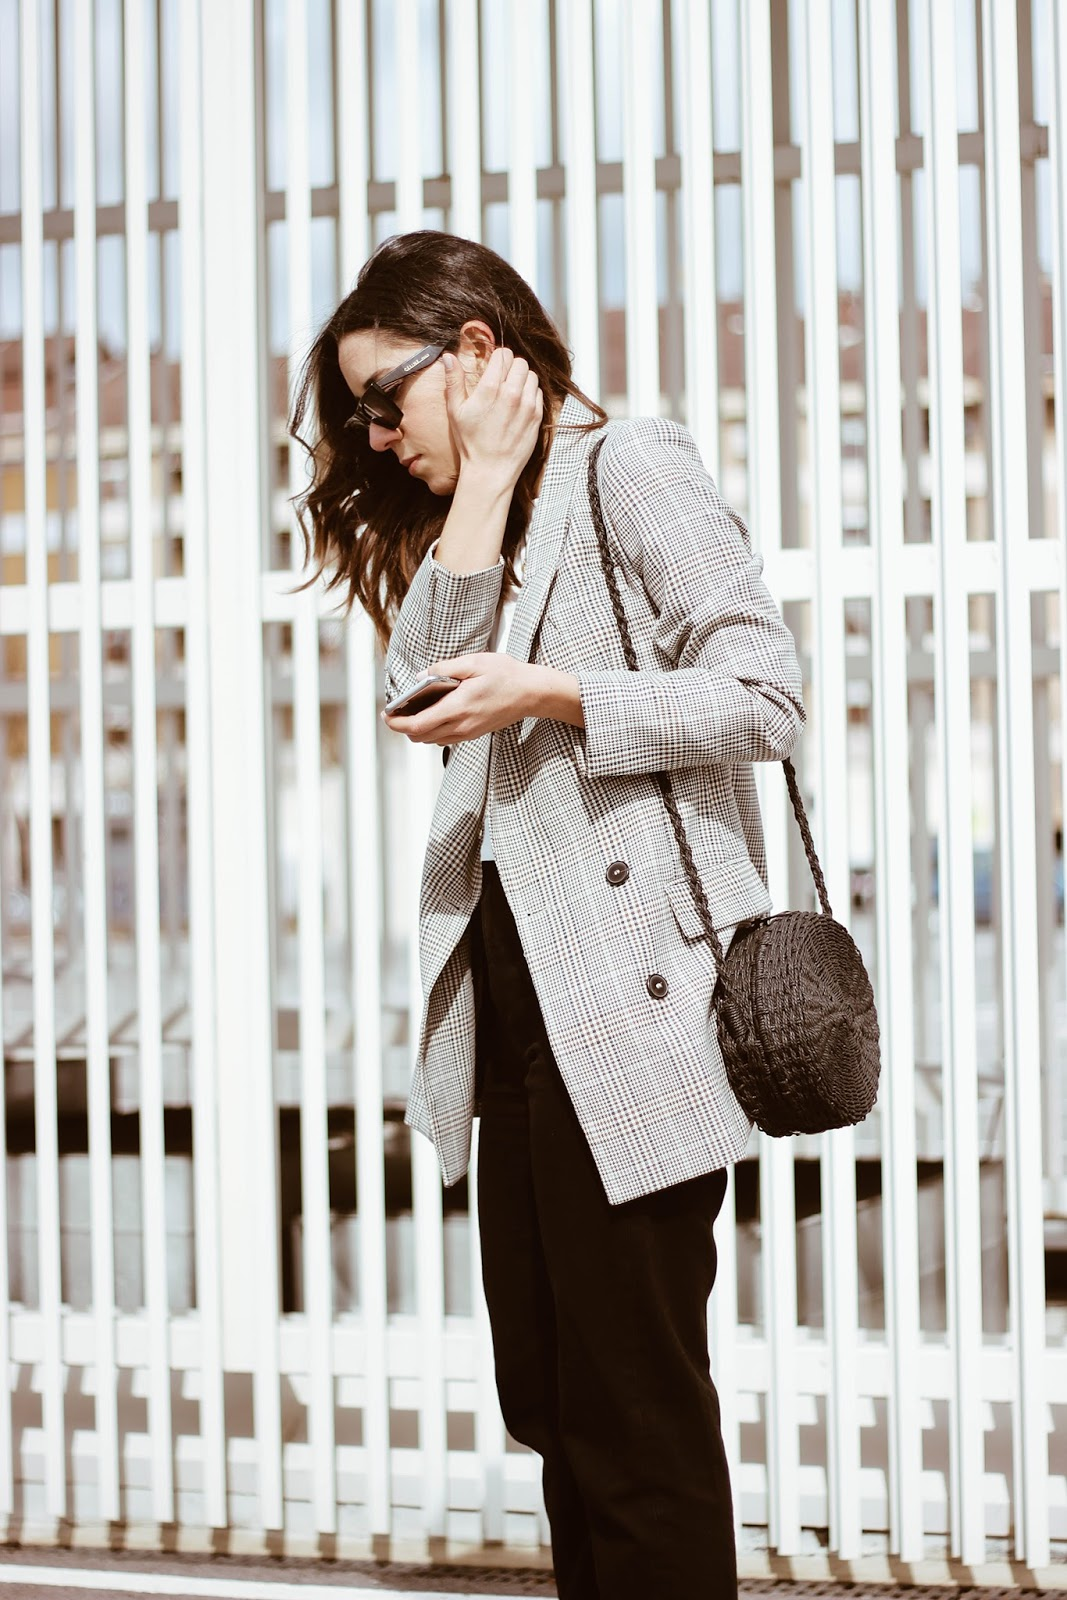 MULES JEANS AND BLAZER LOOK WITH RAFFIA BAG